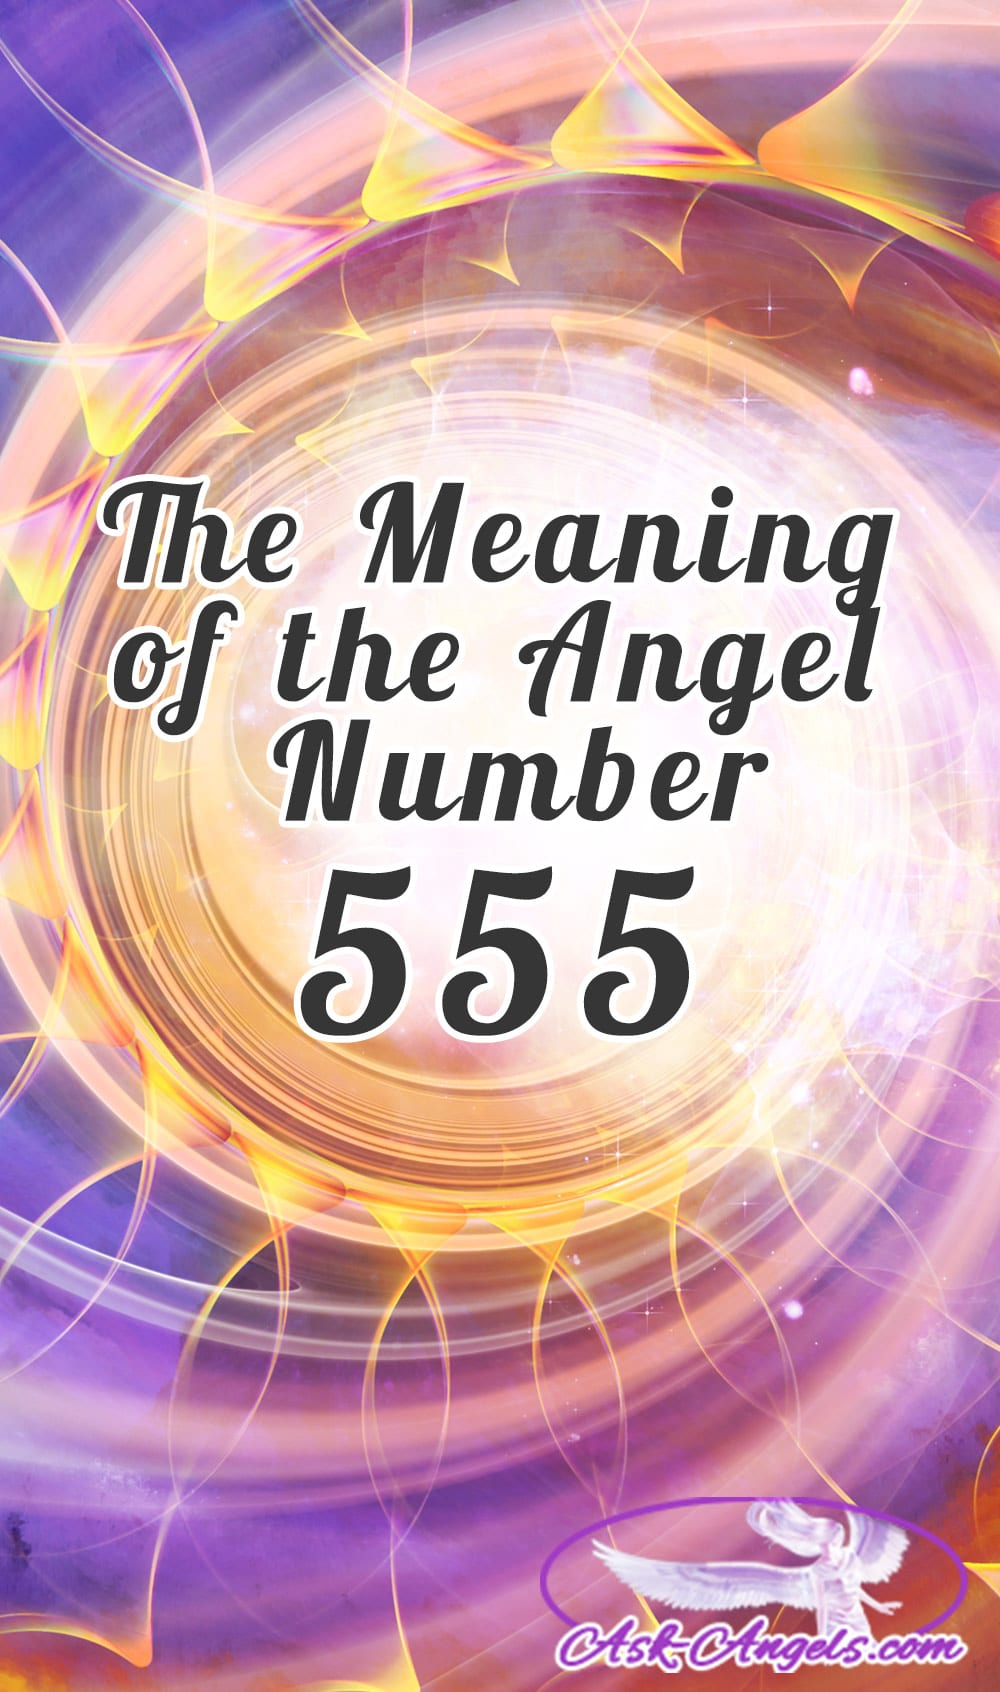 The Meaning of the Angel Number 555